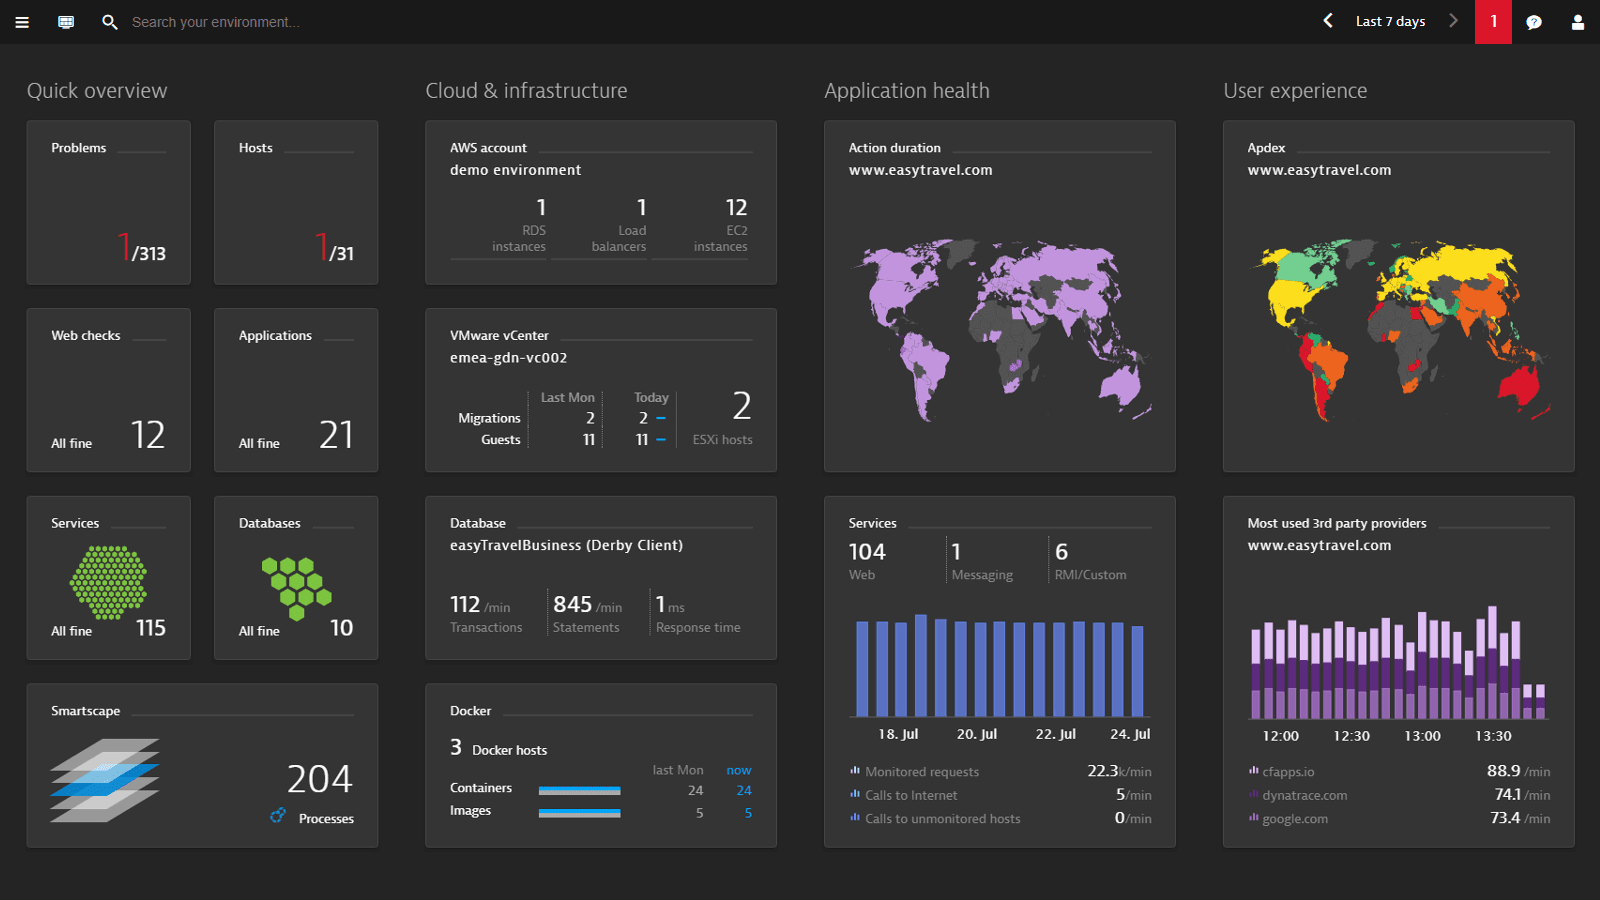 Customizable dashboards shows all important facts related to your web application in a single location.